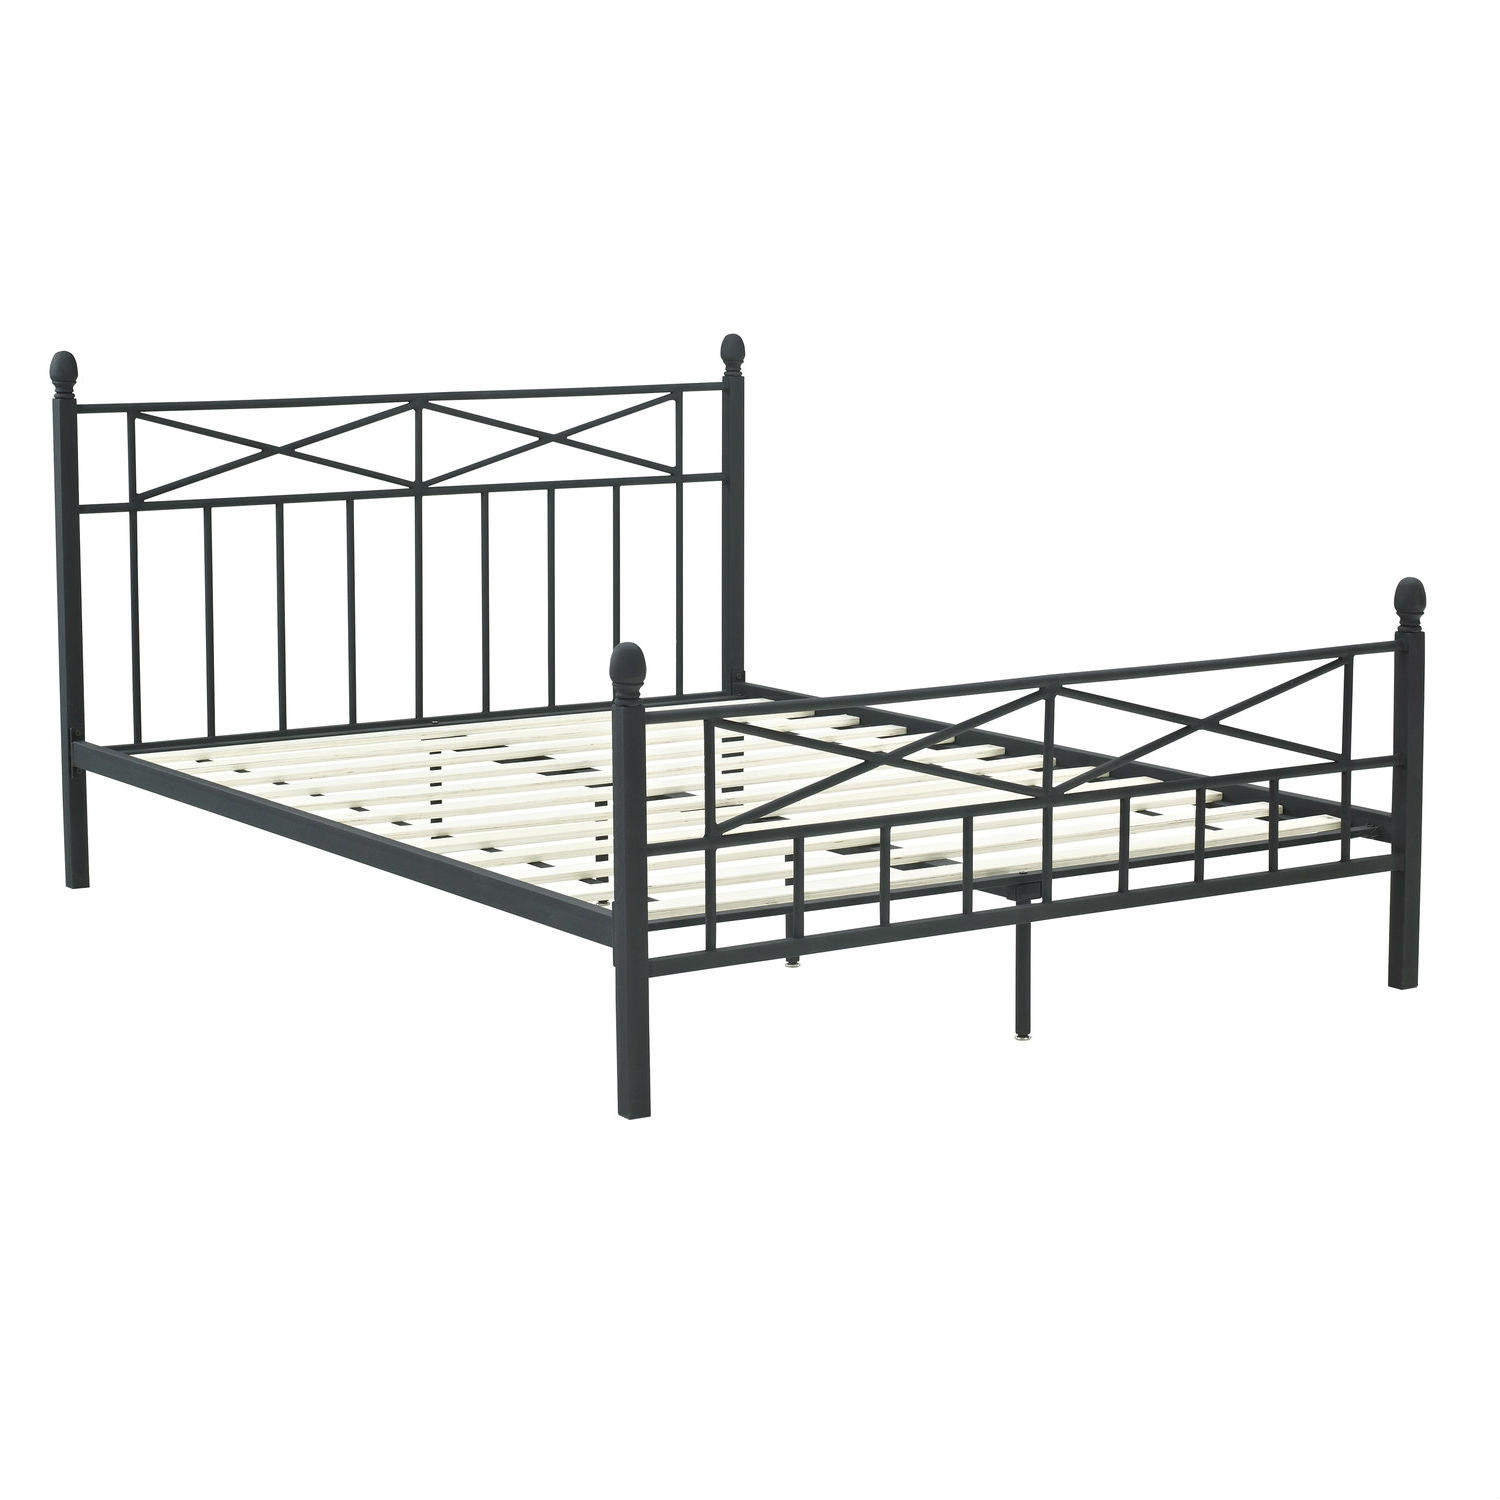 queen platform bed frame with headboard  show home design, Headboard designs